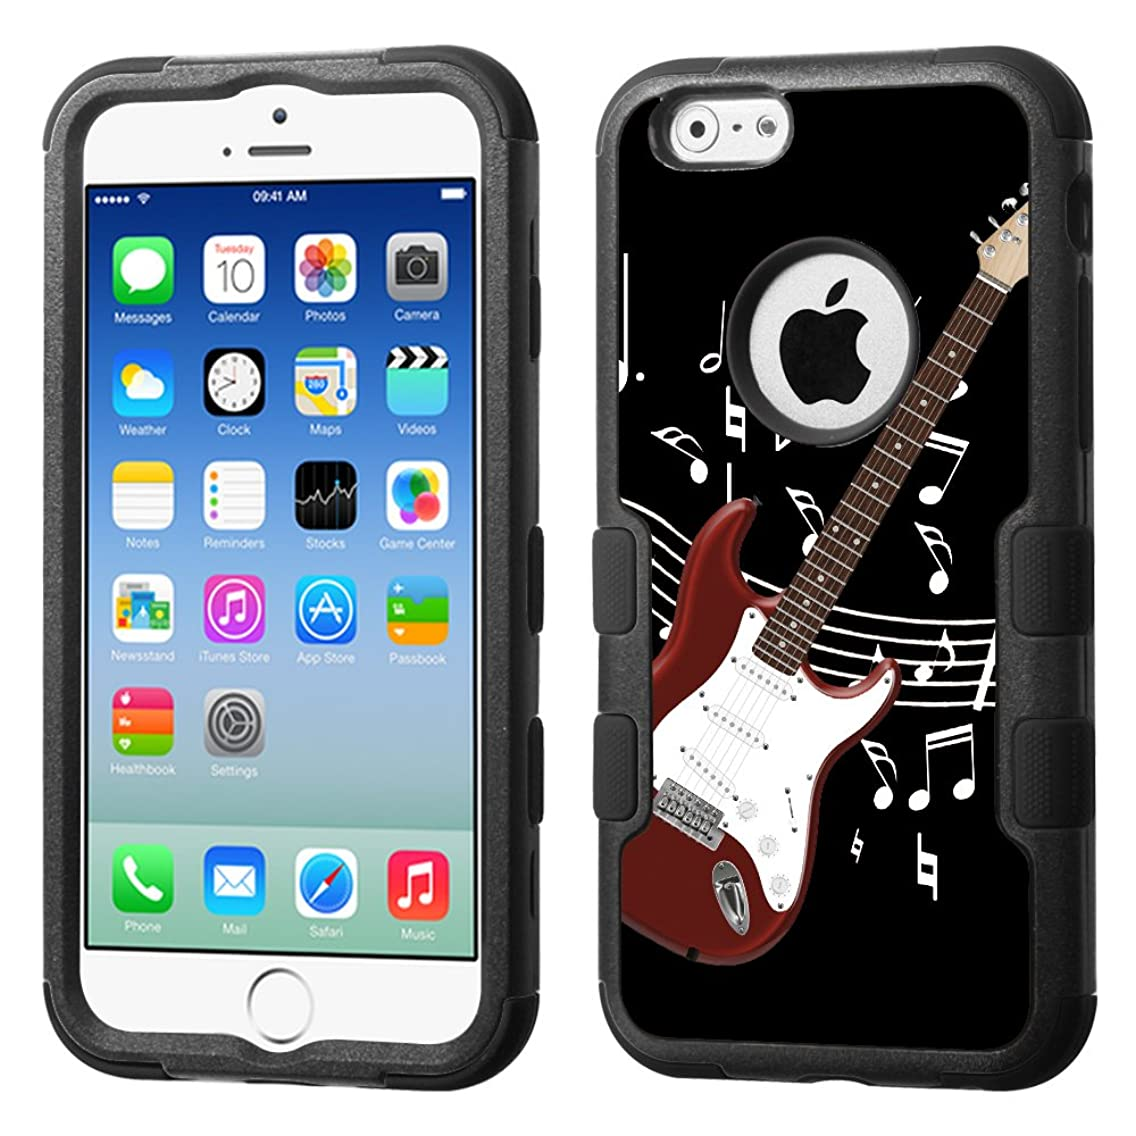 One Tough Shield 3-Layer Hybrid Shock Absorbent Case (Black/Black) for Apple iPhone 6/6s - (Electric Guitar/Red)